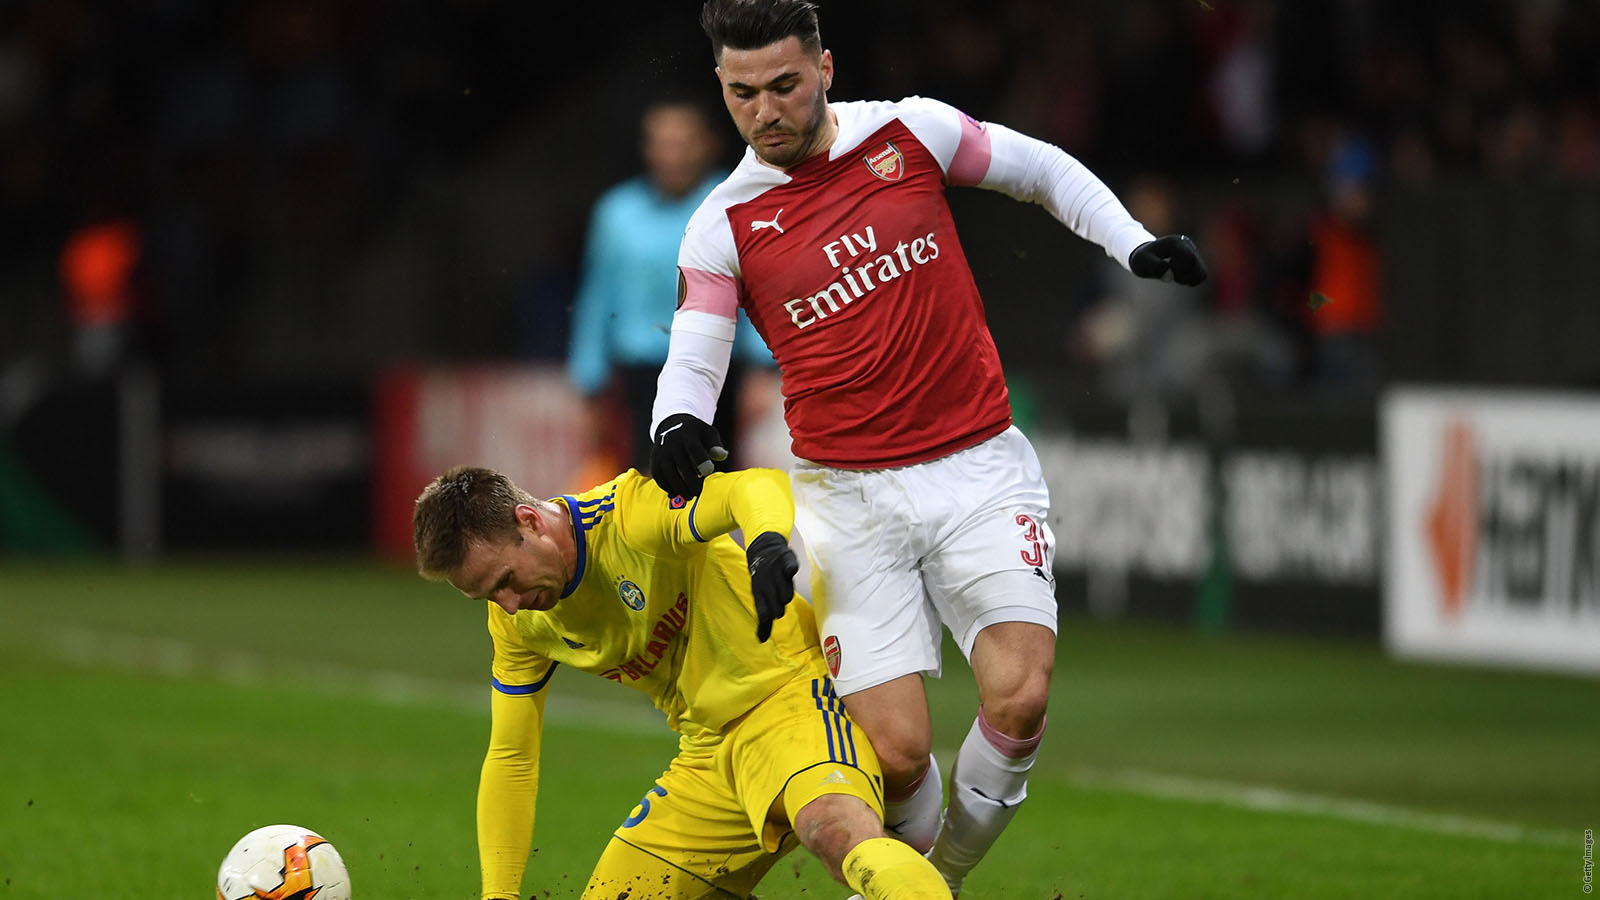 arsenal vs bate - photo #13